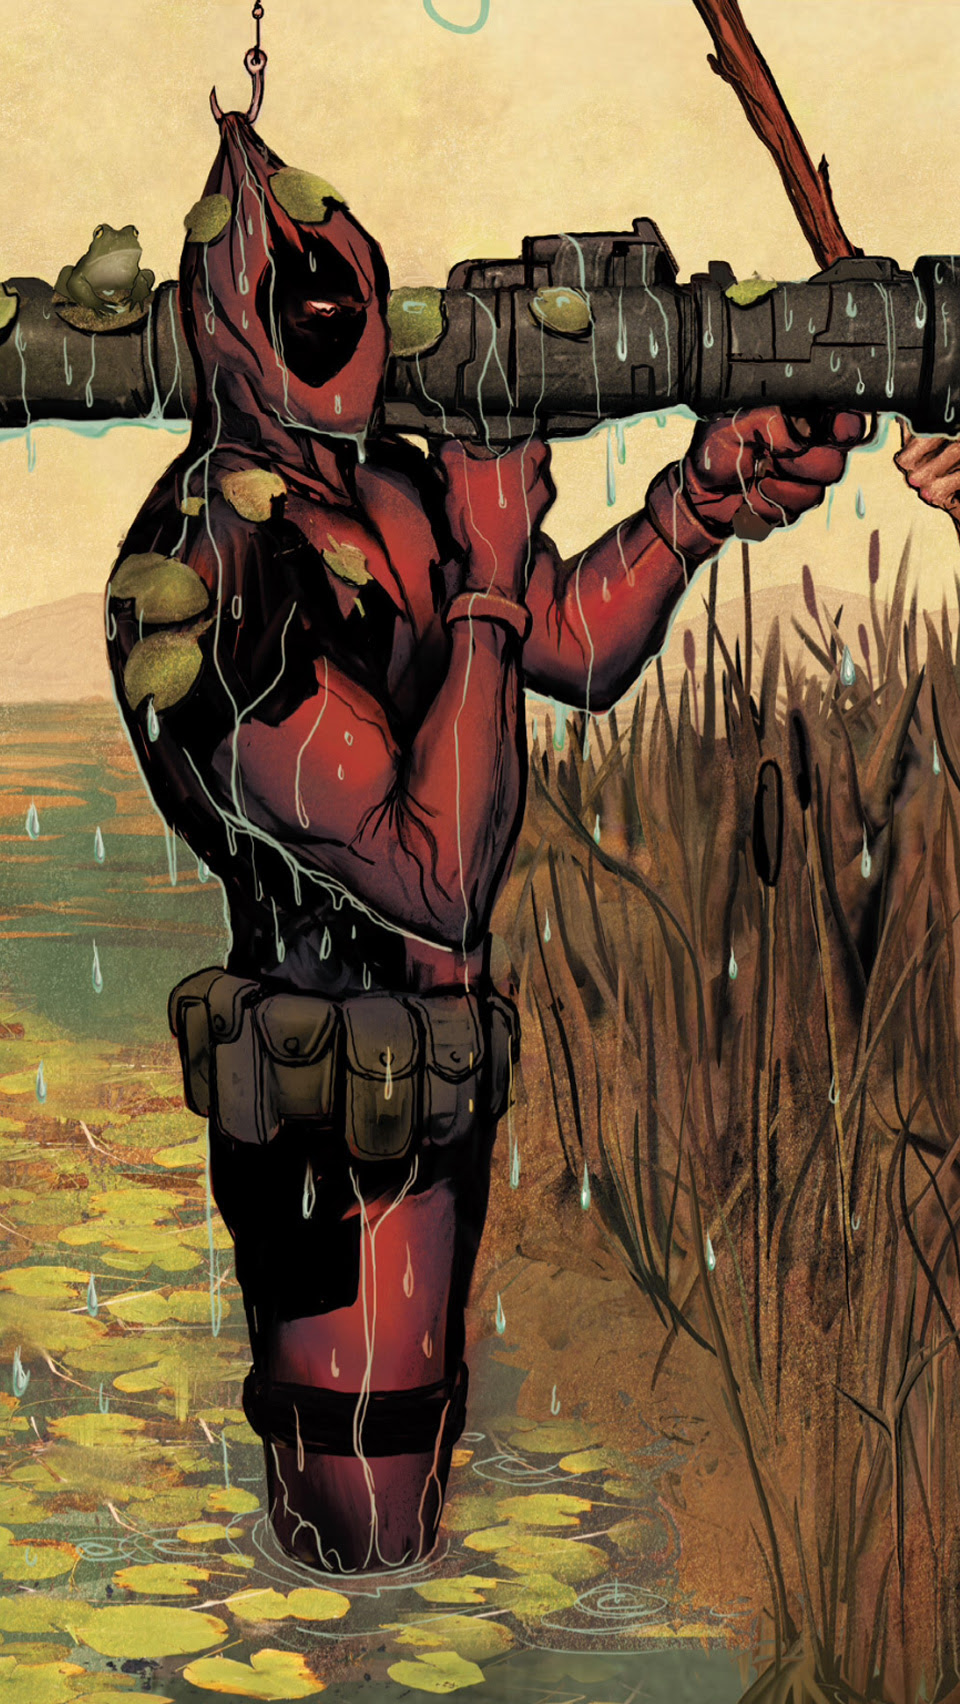 deadpooliphonewallpaperlasertime6 \u2013 Laser Time